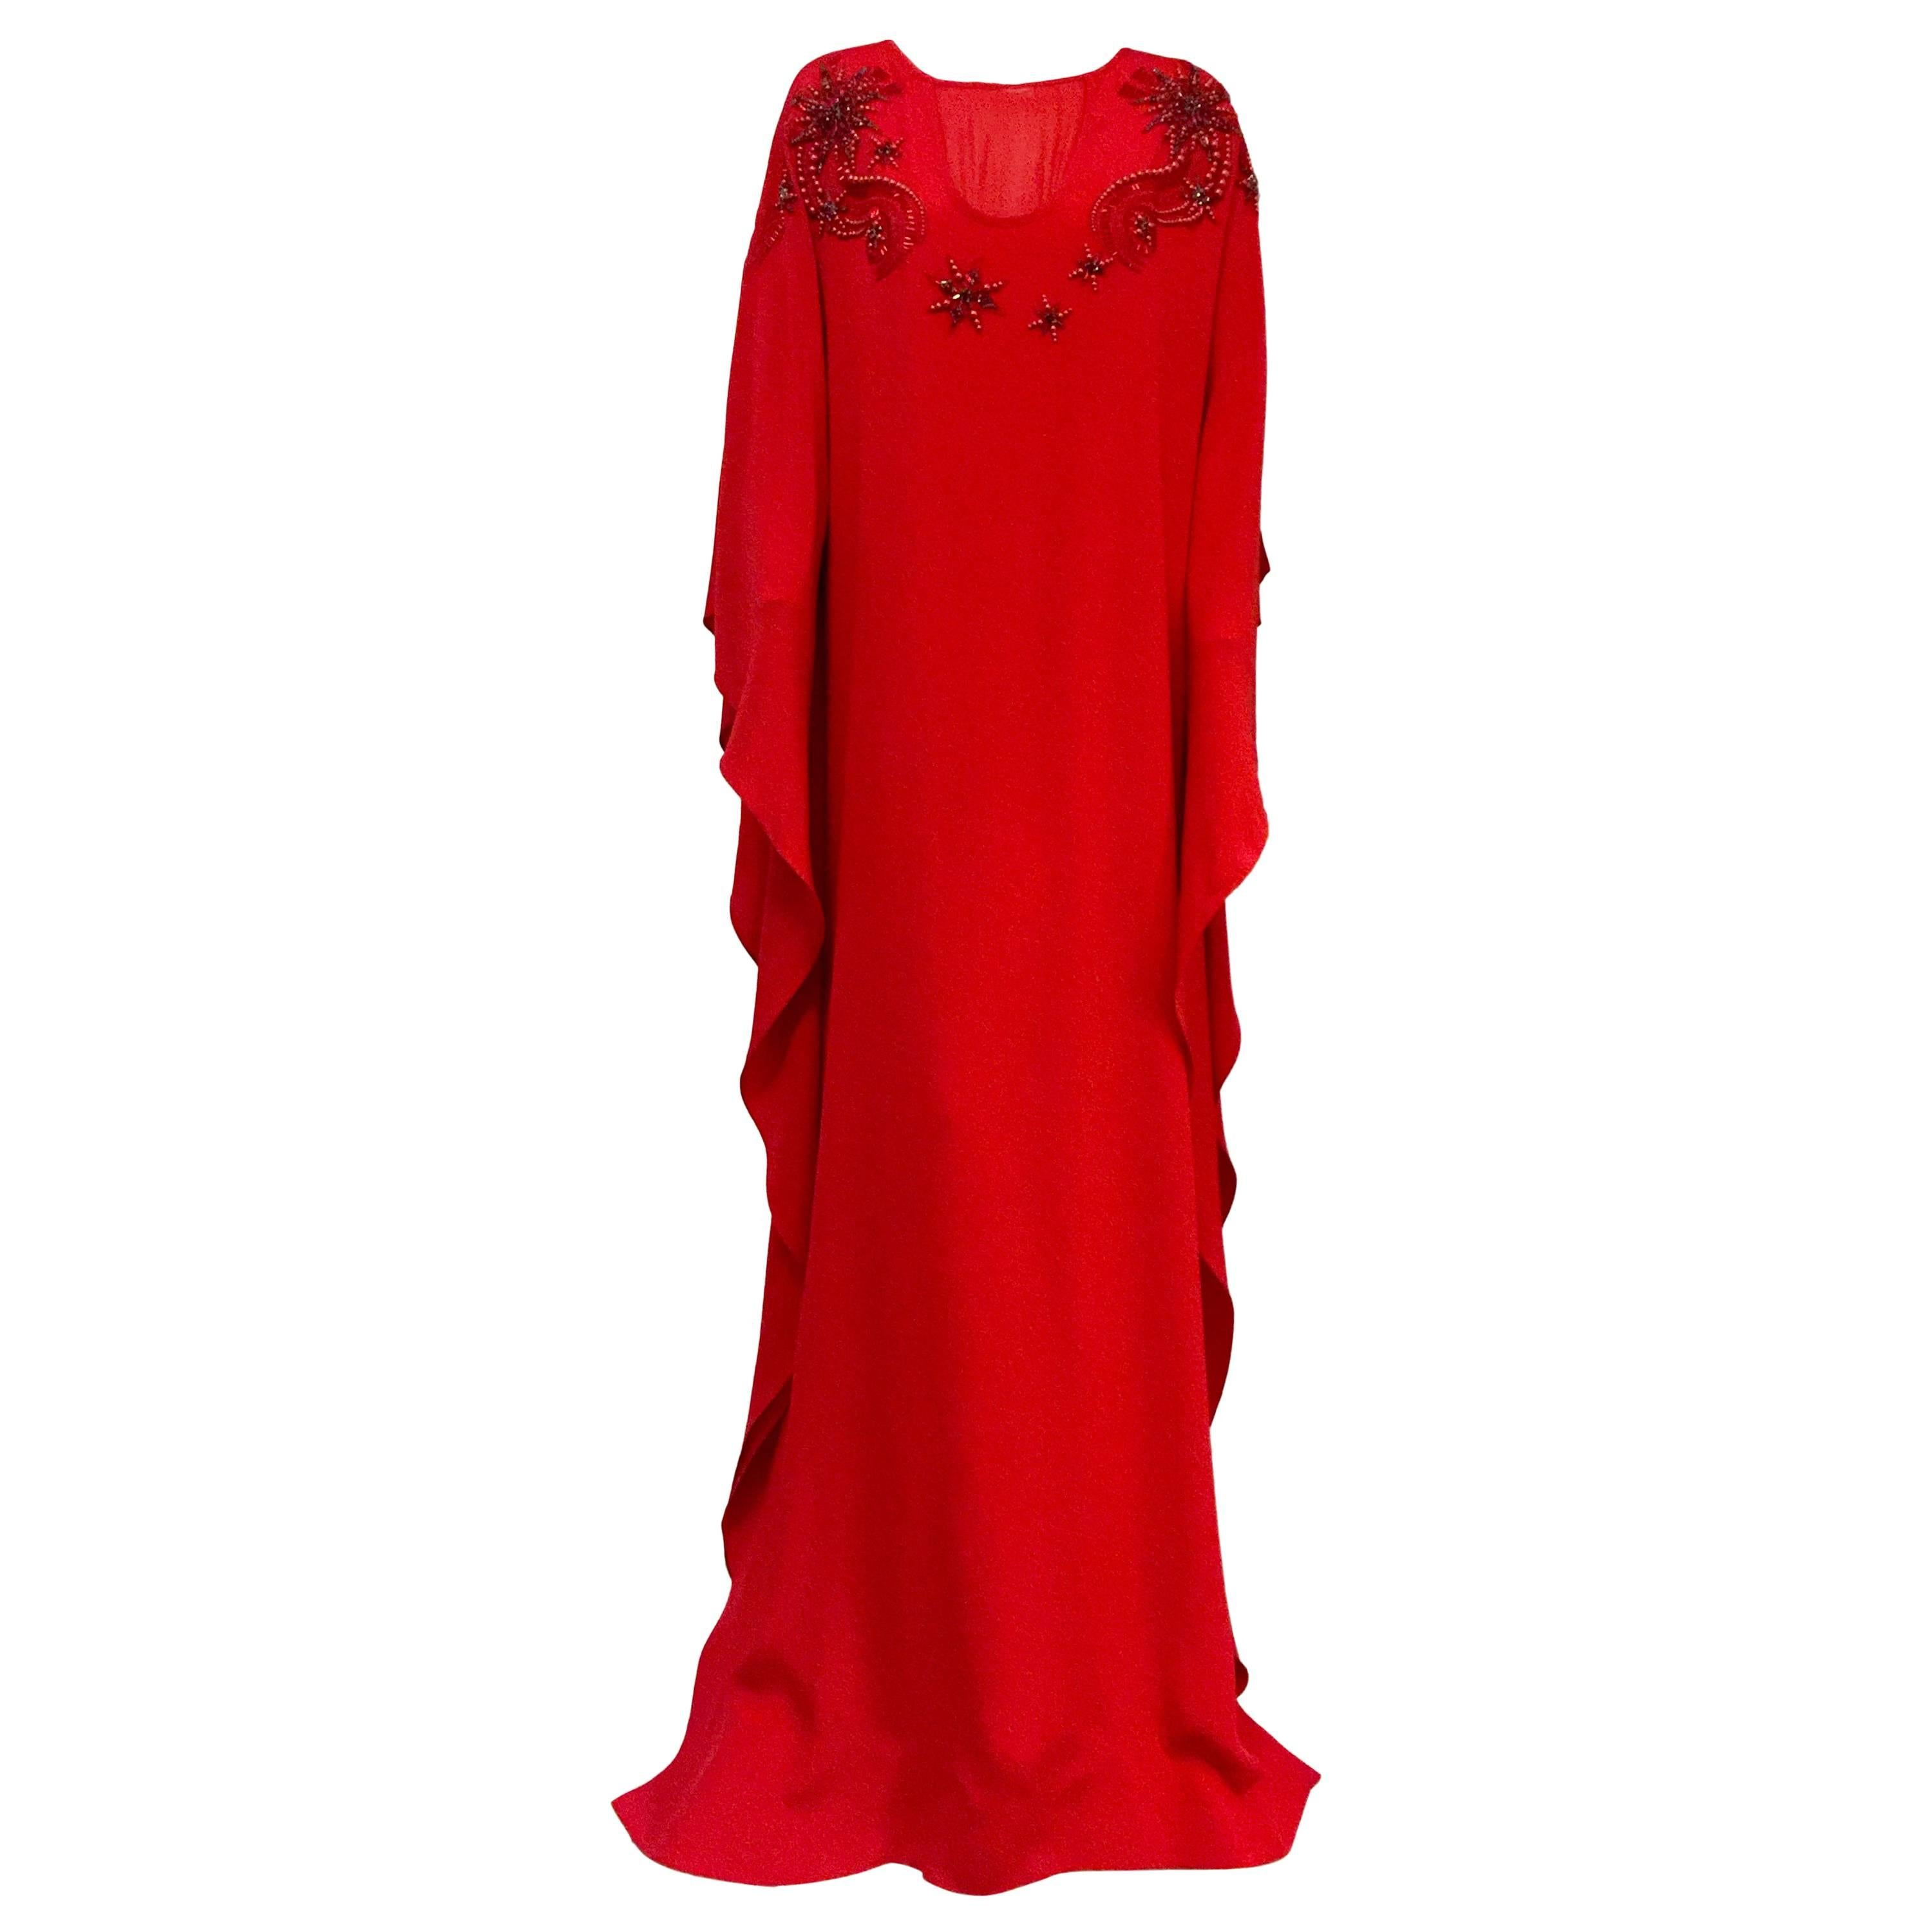 5e55cab2c2b NWT Emilio Pucci Rapturous Red Silk Caftan With Holiday Embroidery For Sale  at 1stdibs